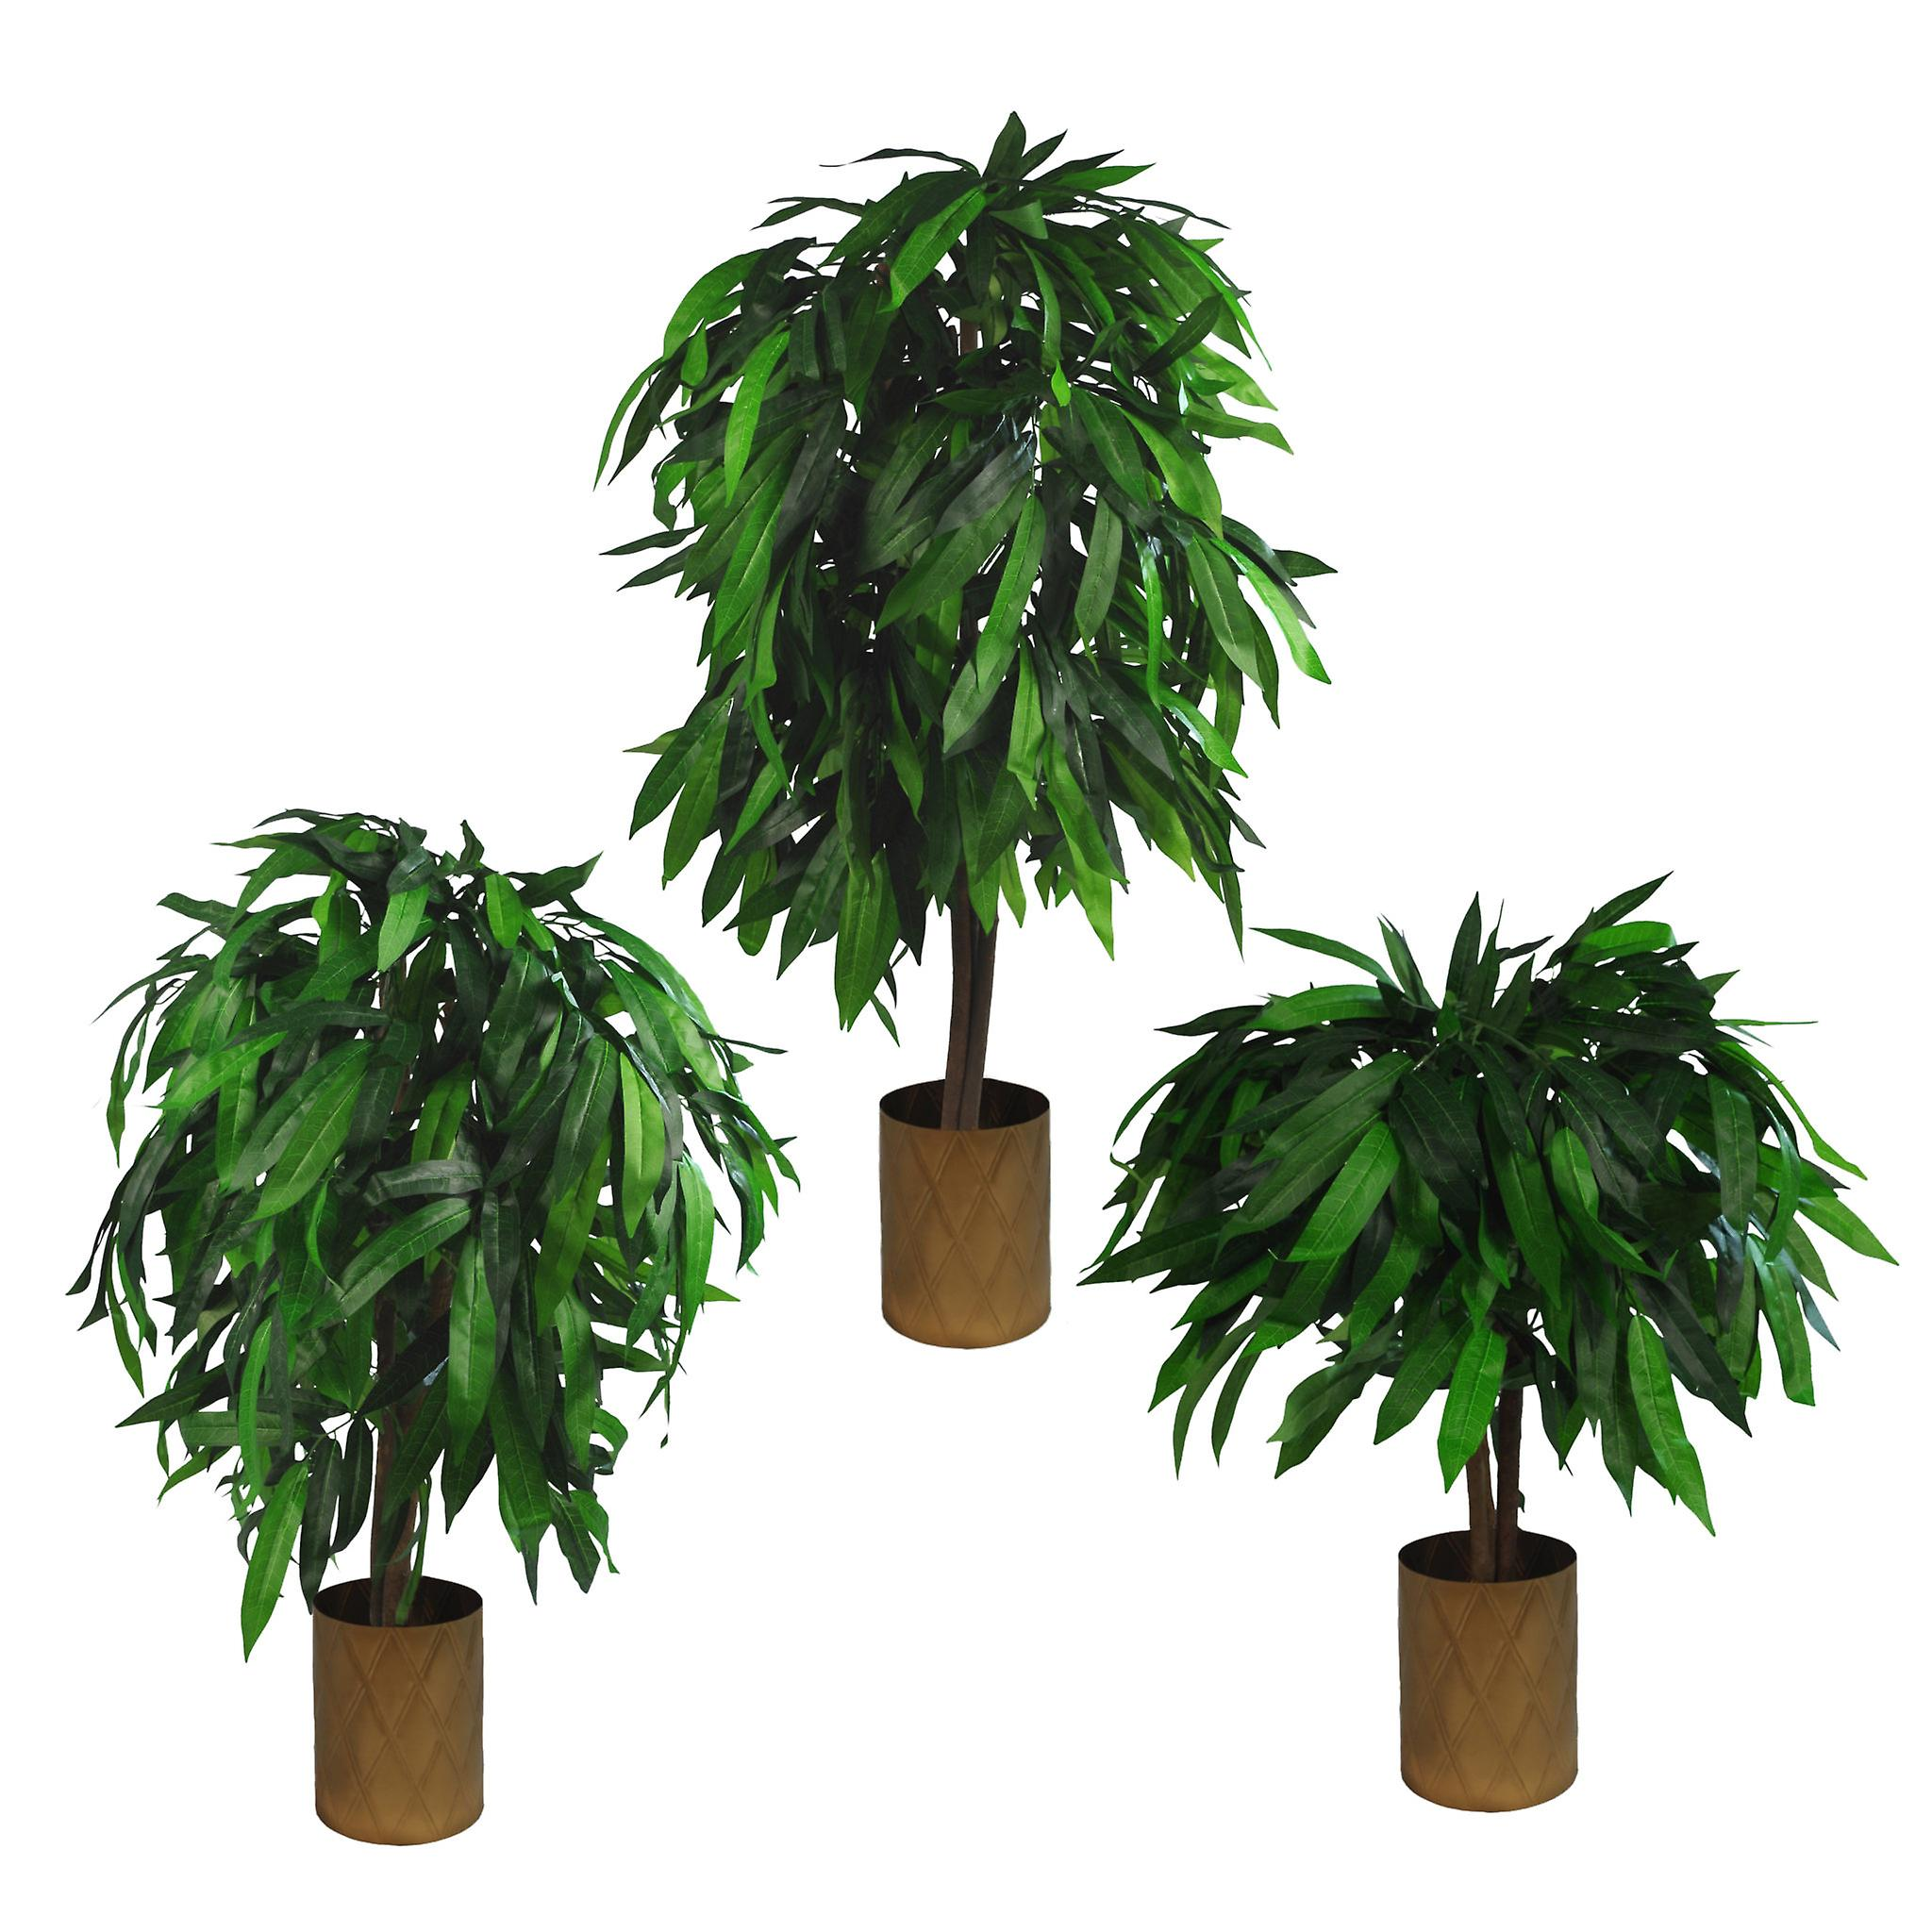 100cm Large Artificial Mango Tree Plant with Metal Planter